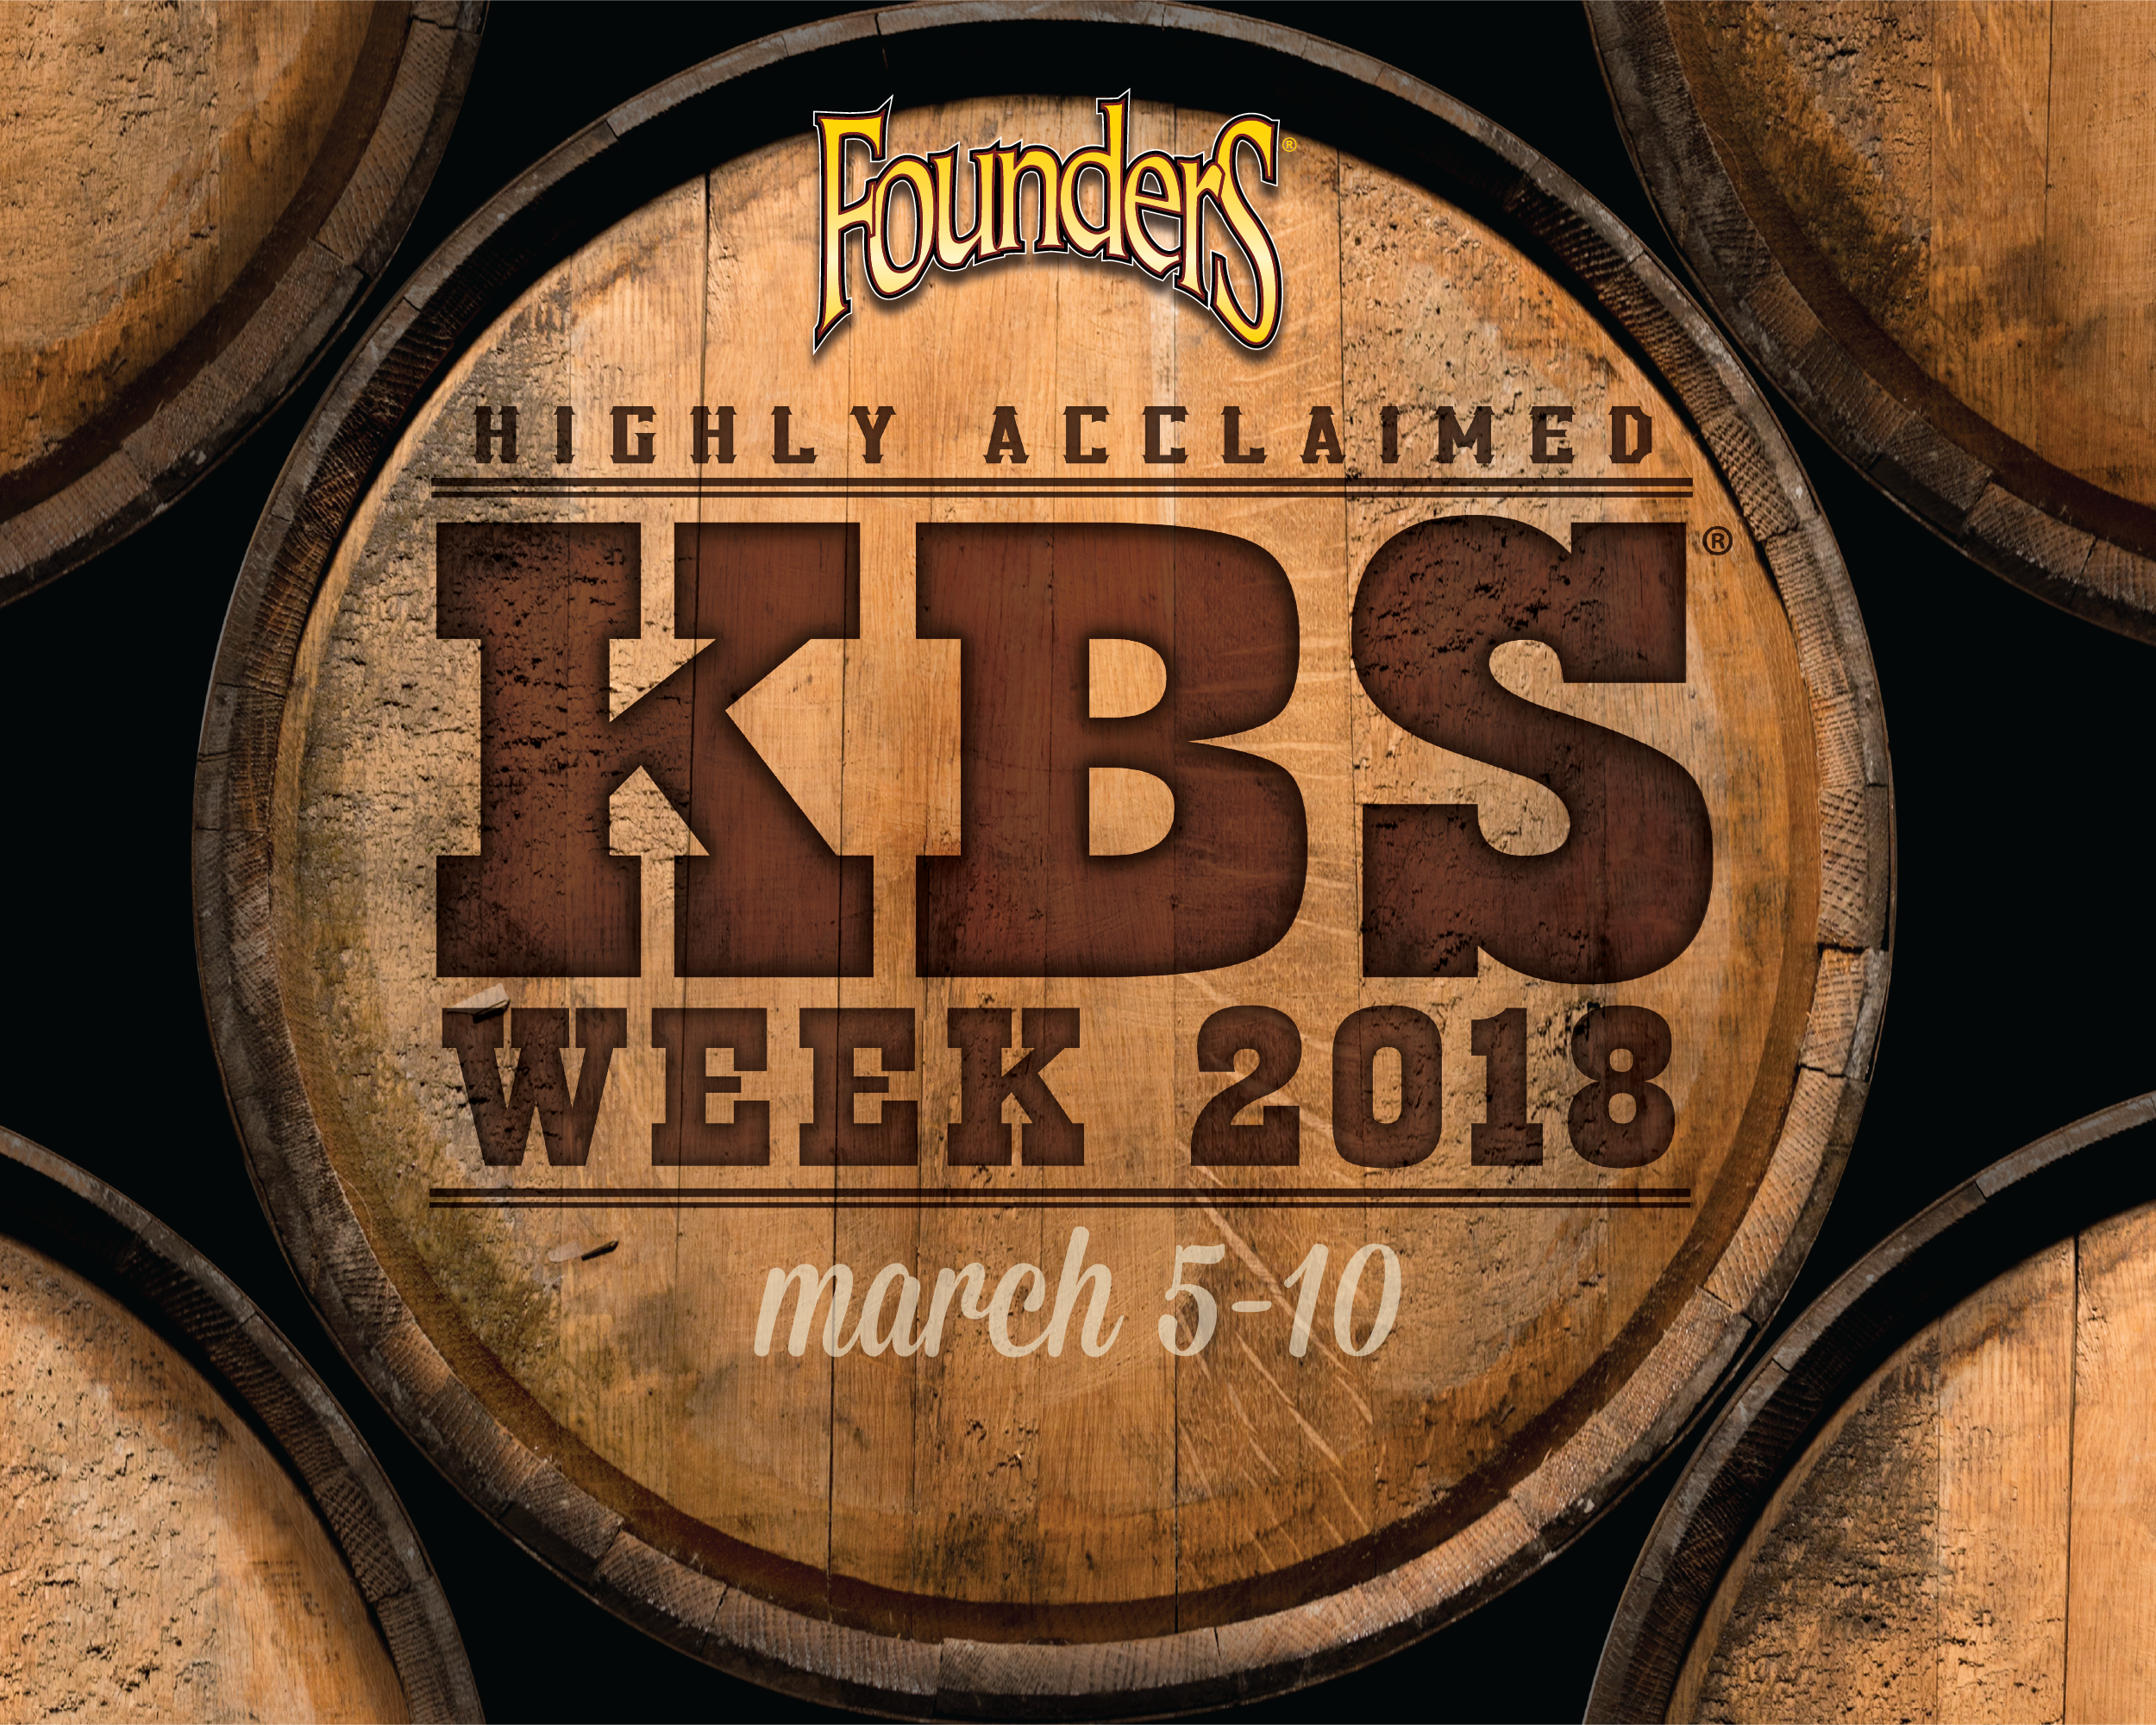 Founders KBS week 2018 promotion